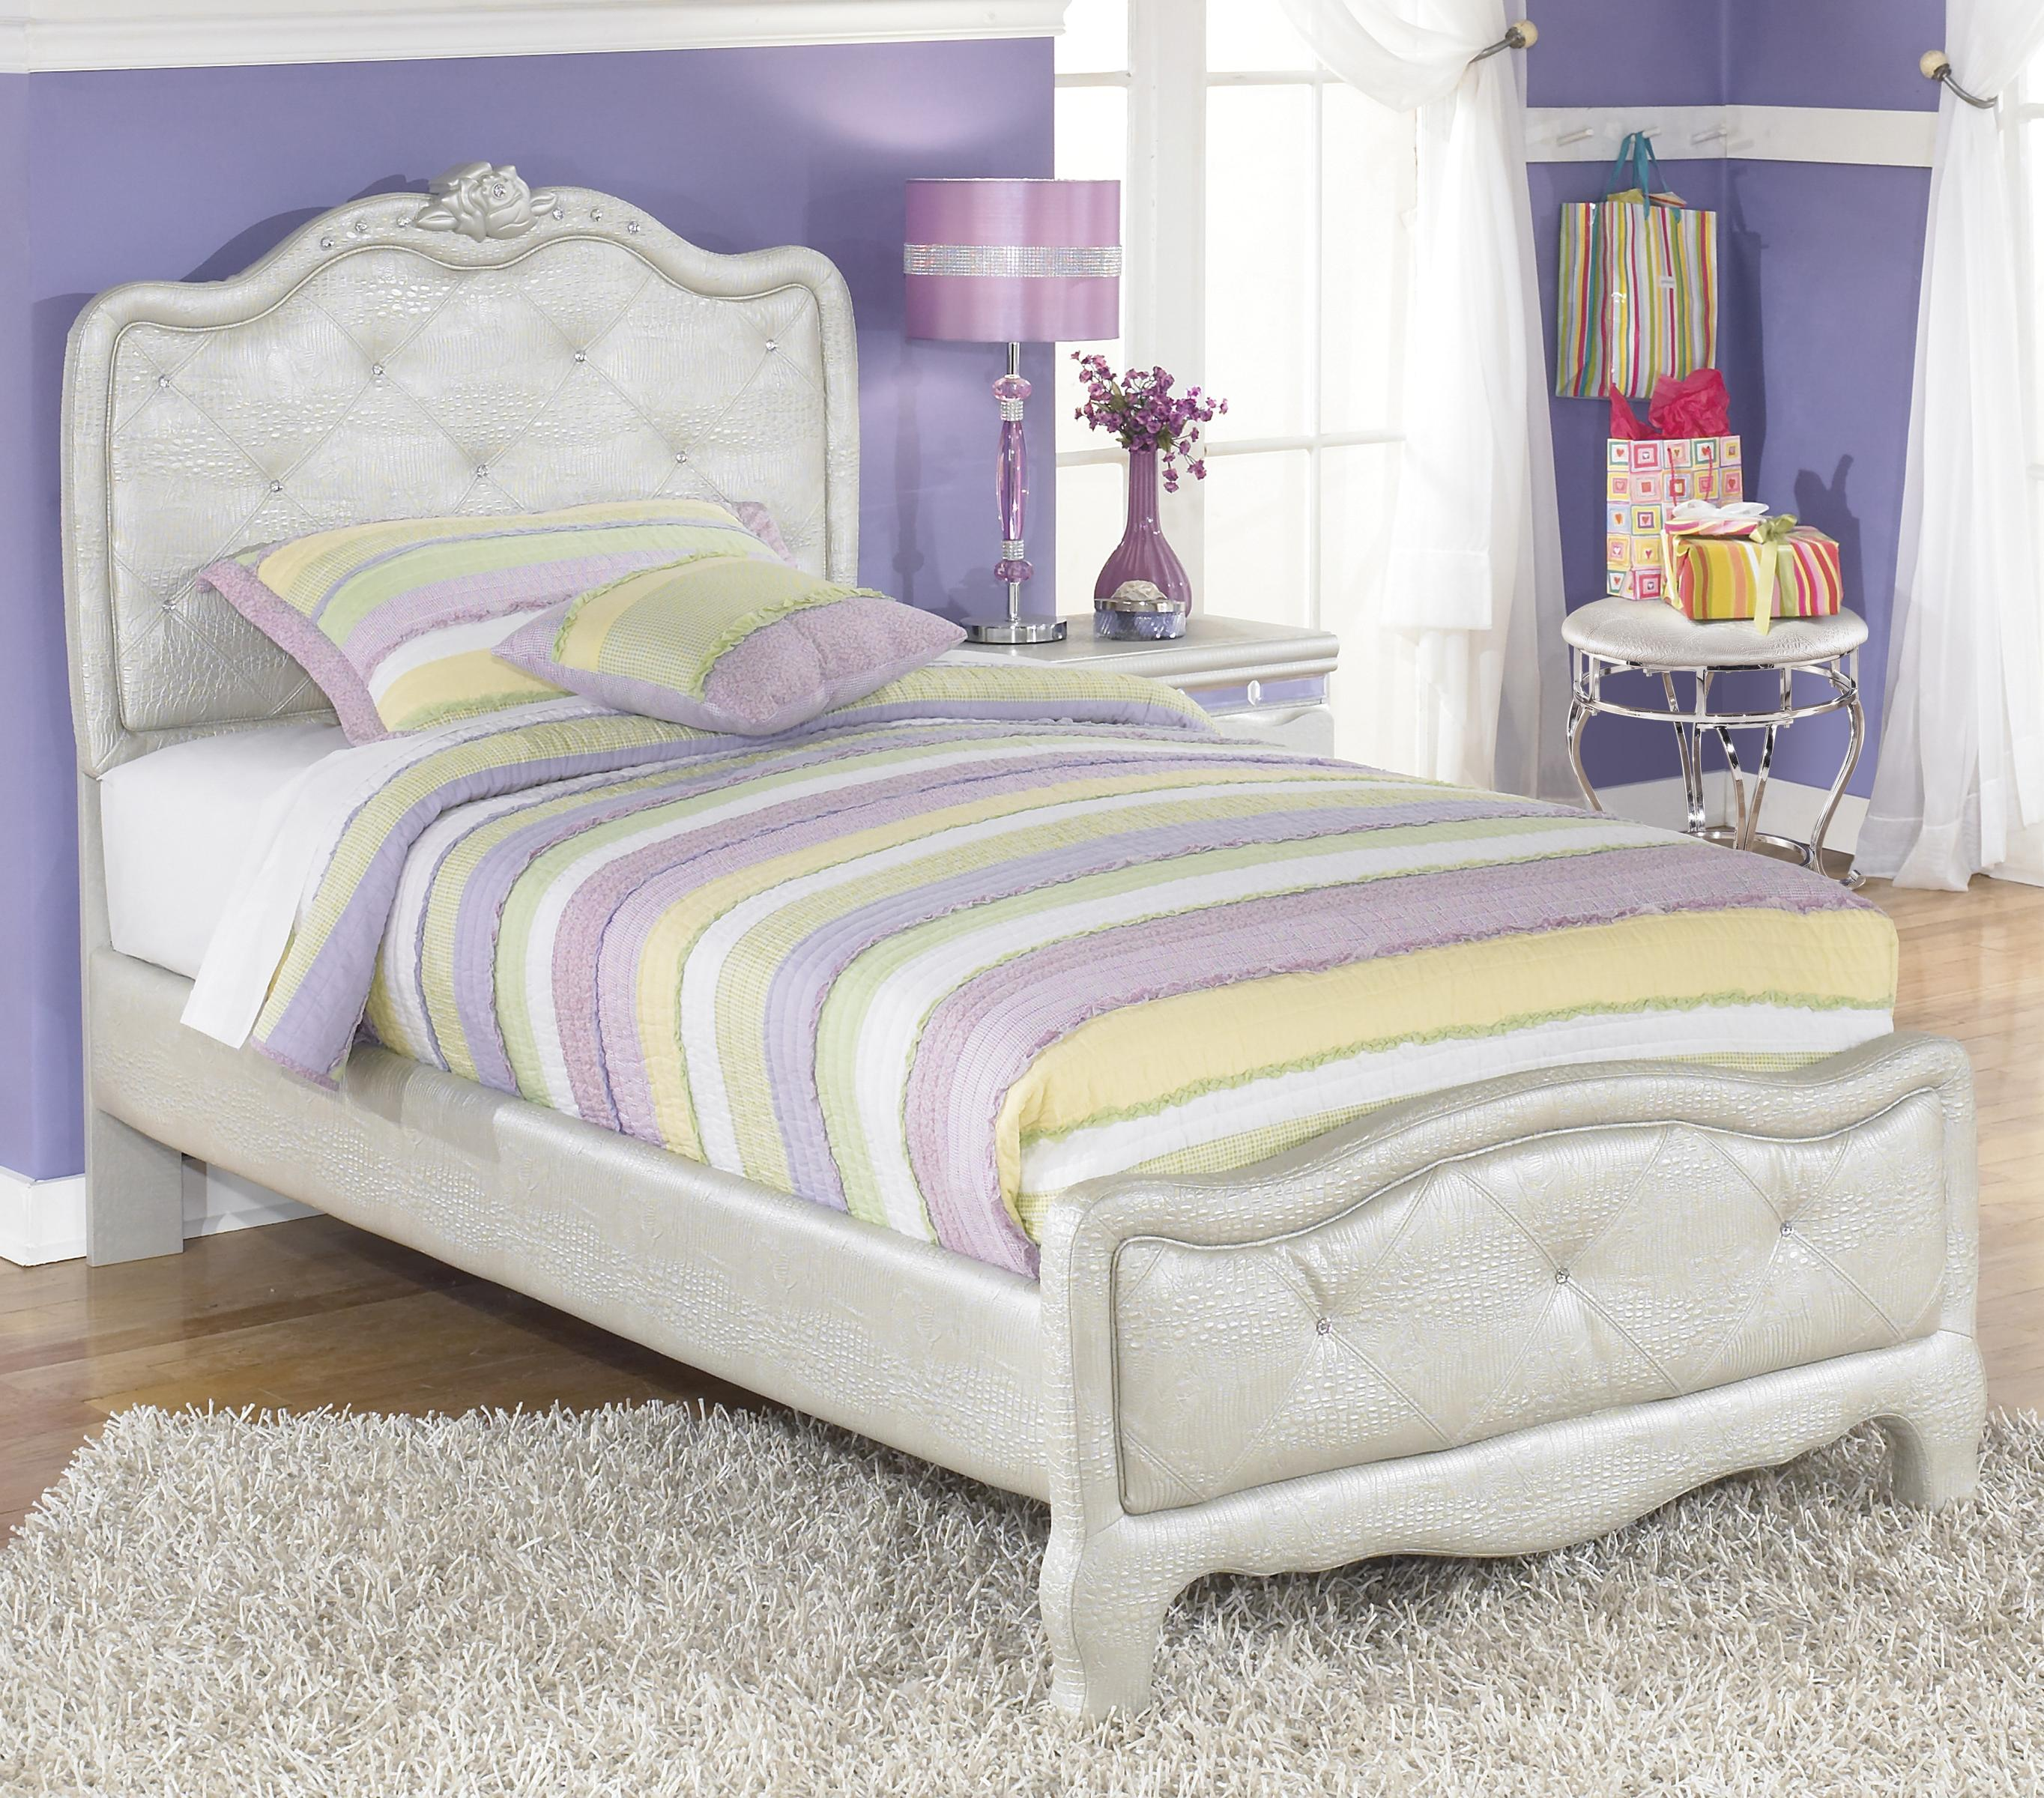 Signature Design by Ashley Zarollina Twin Upholstered Bed - Item Number: B182-63+62